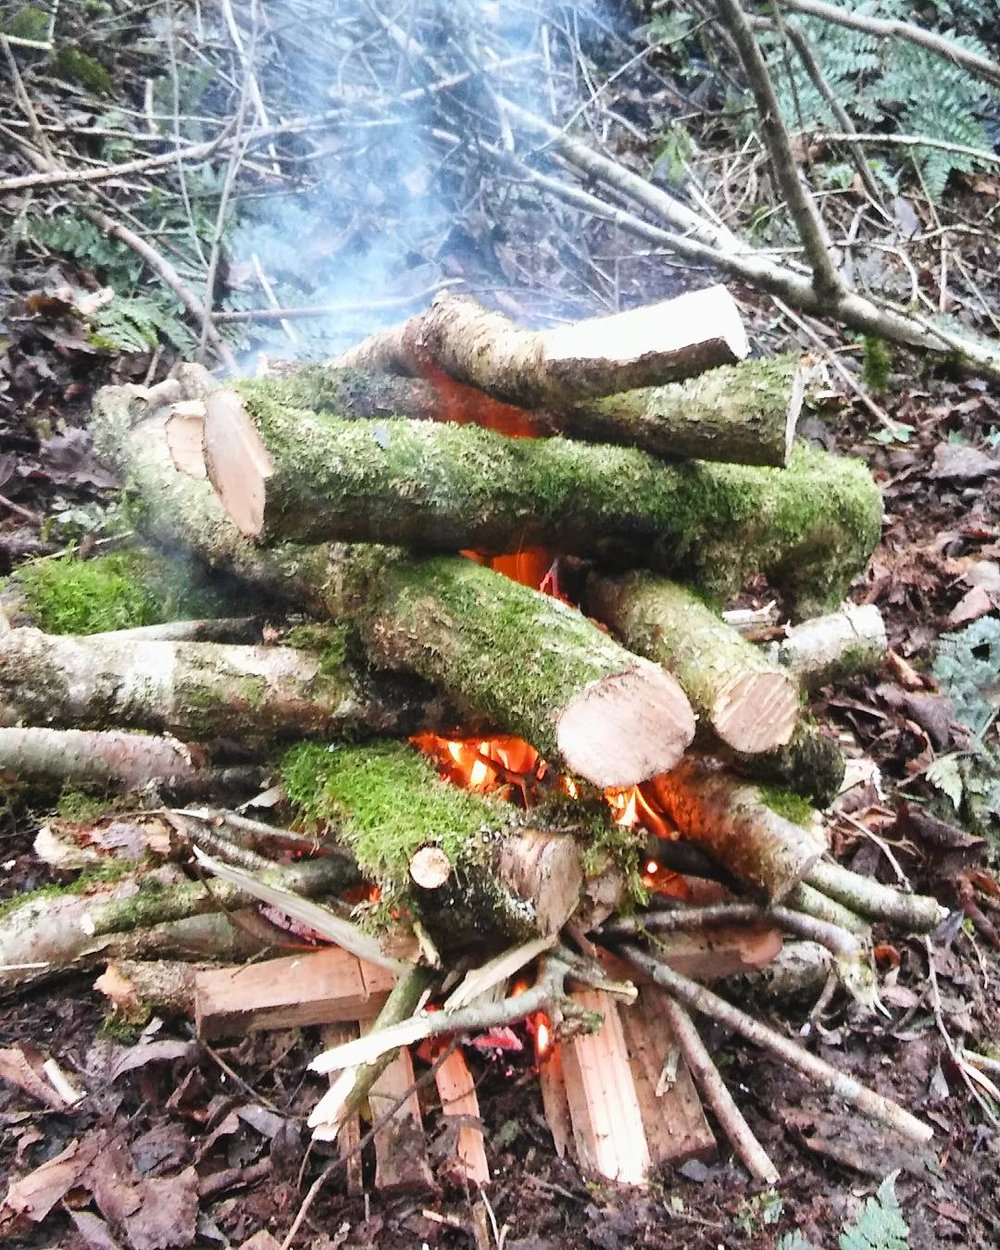 Step 3: Keep piling on logs in a criss-cross pattern so that the fire can travel up through the middle. Allows the wood dry out as well.